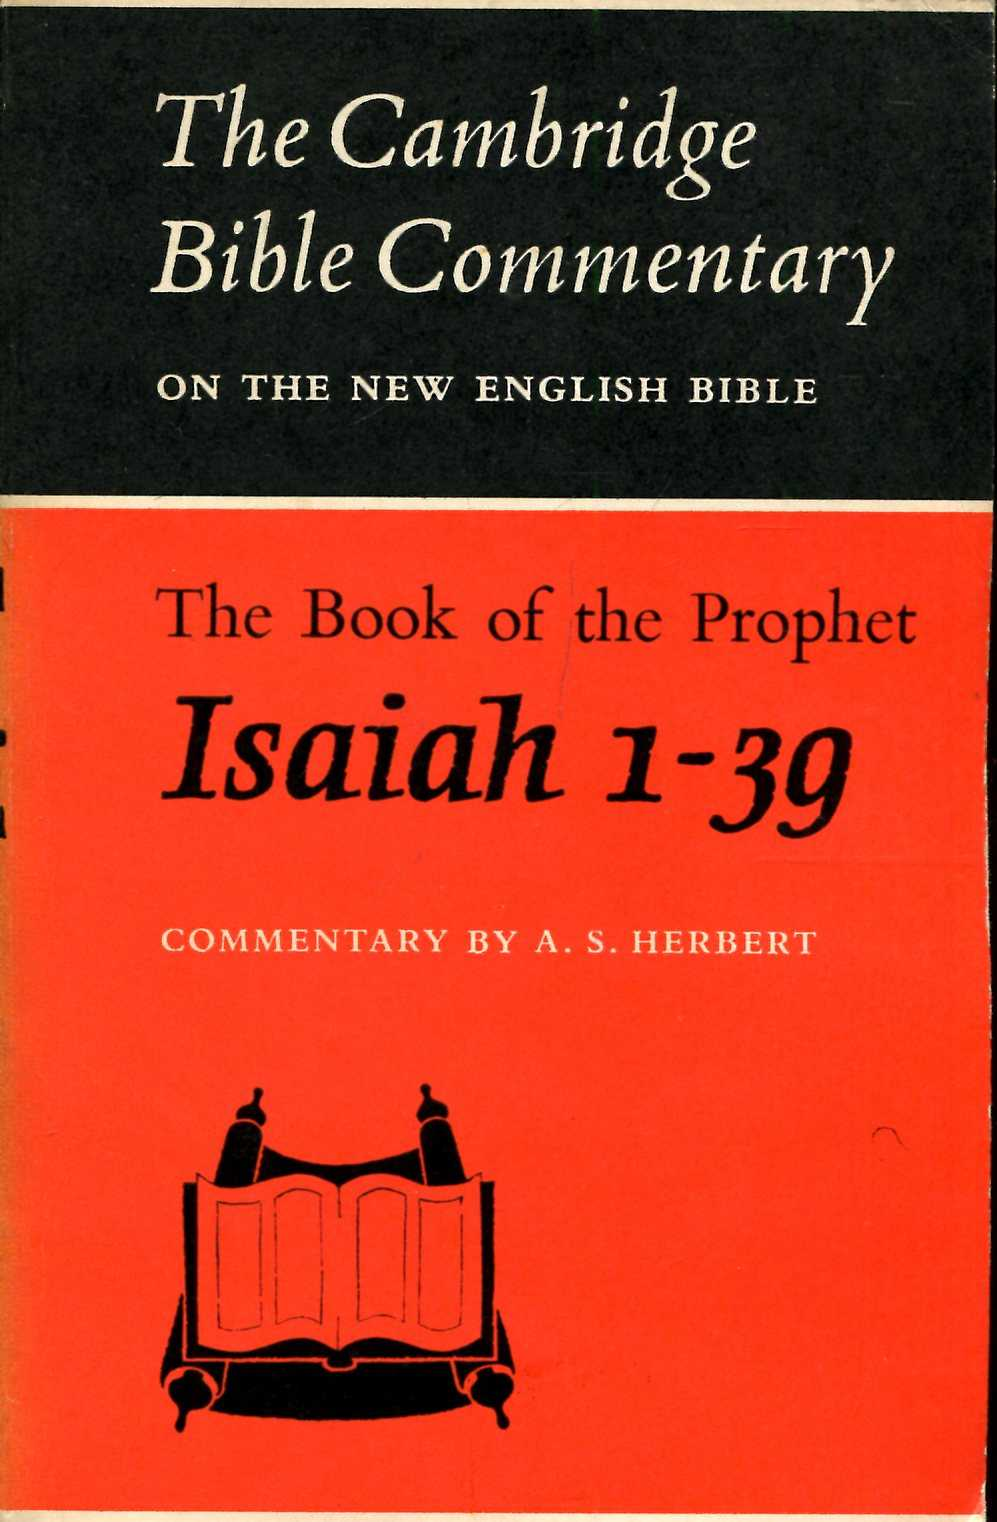 Image for Cambridge Bible Commentaries: The Book of the Prophet Isaiah, 1-39